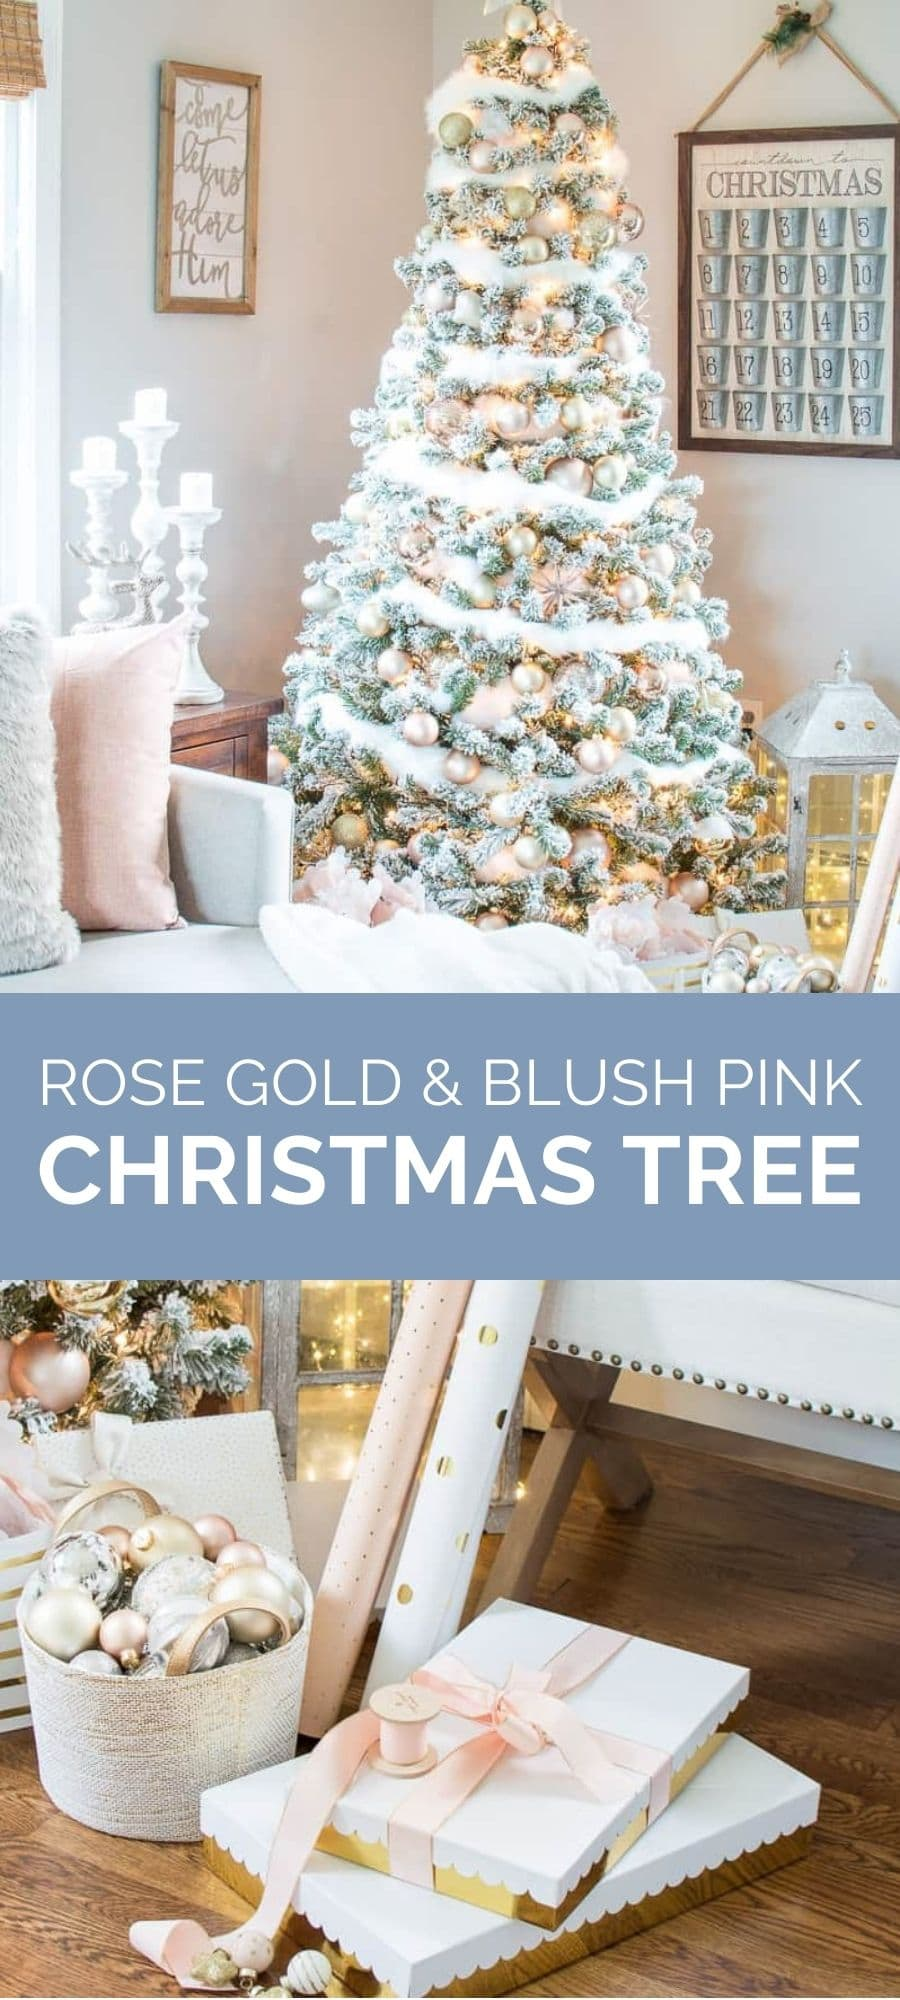 rose gold and blush pink Christmas tree